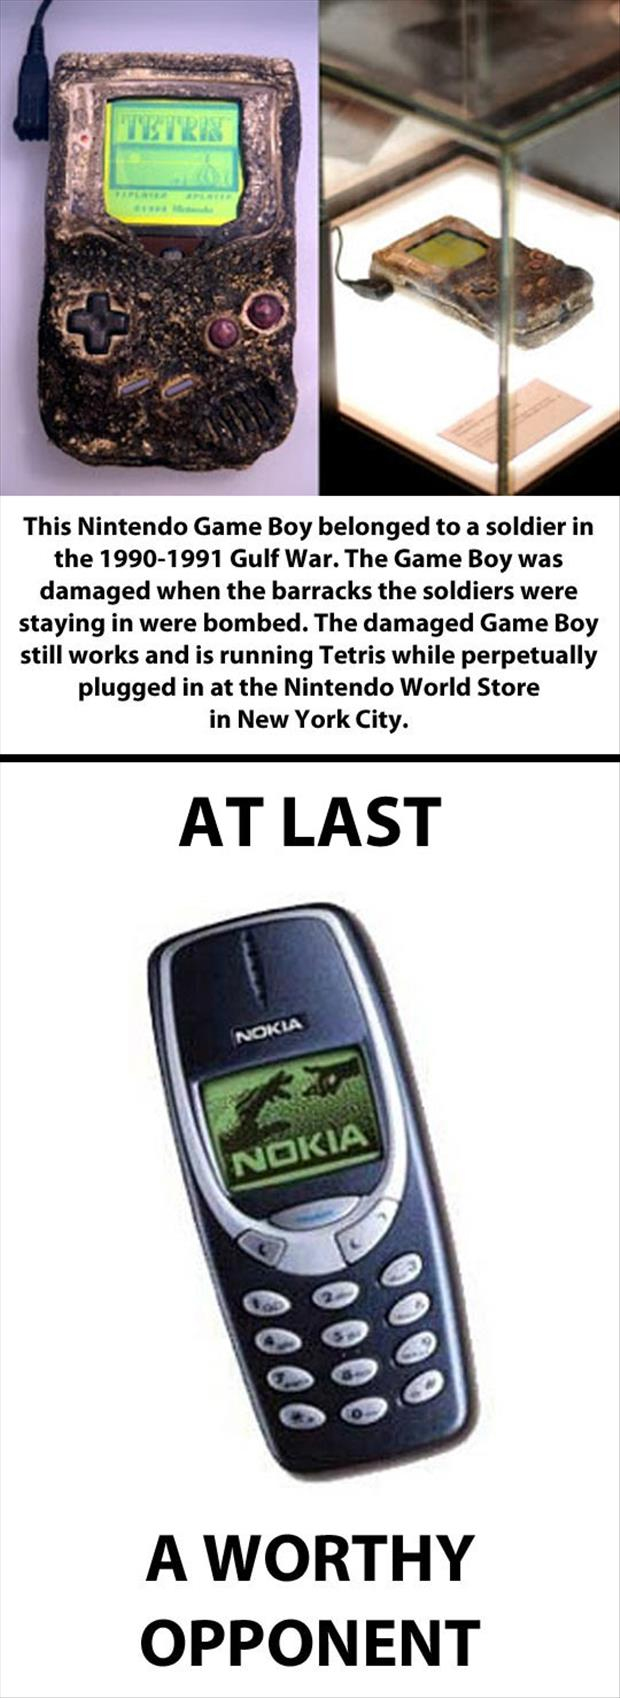 old gameboy survives blast